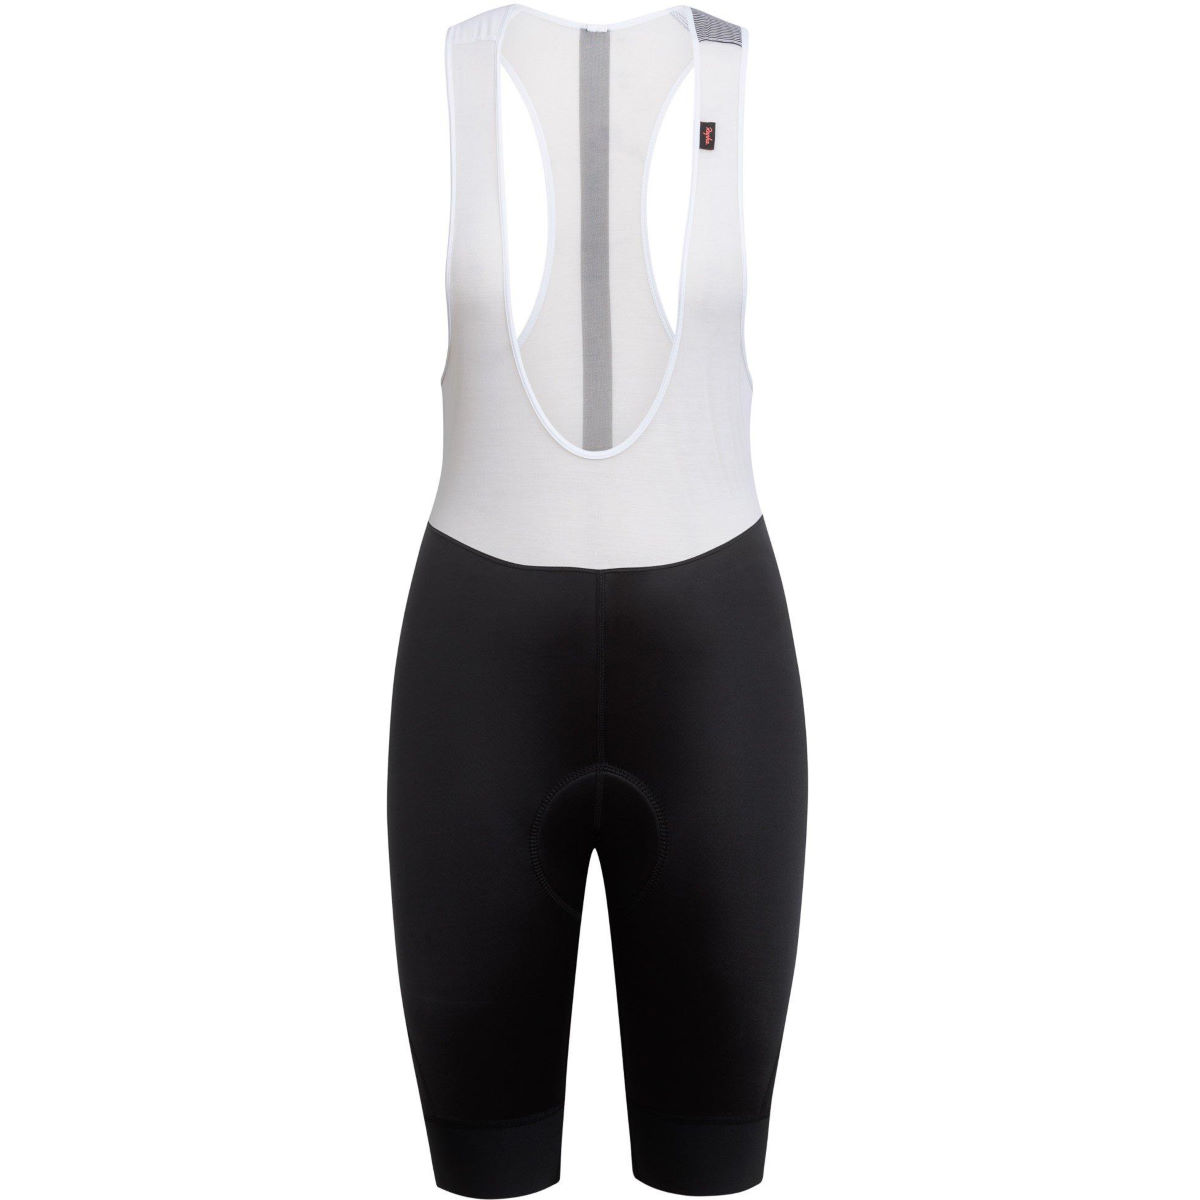 Rapha Women's Souplesse Flyweight Bib Shorts (Regular)   Bib Shorts